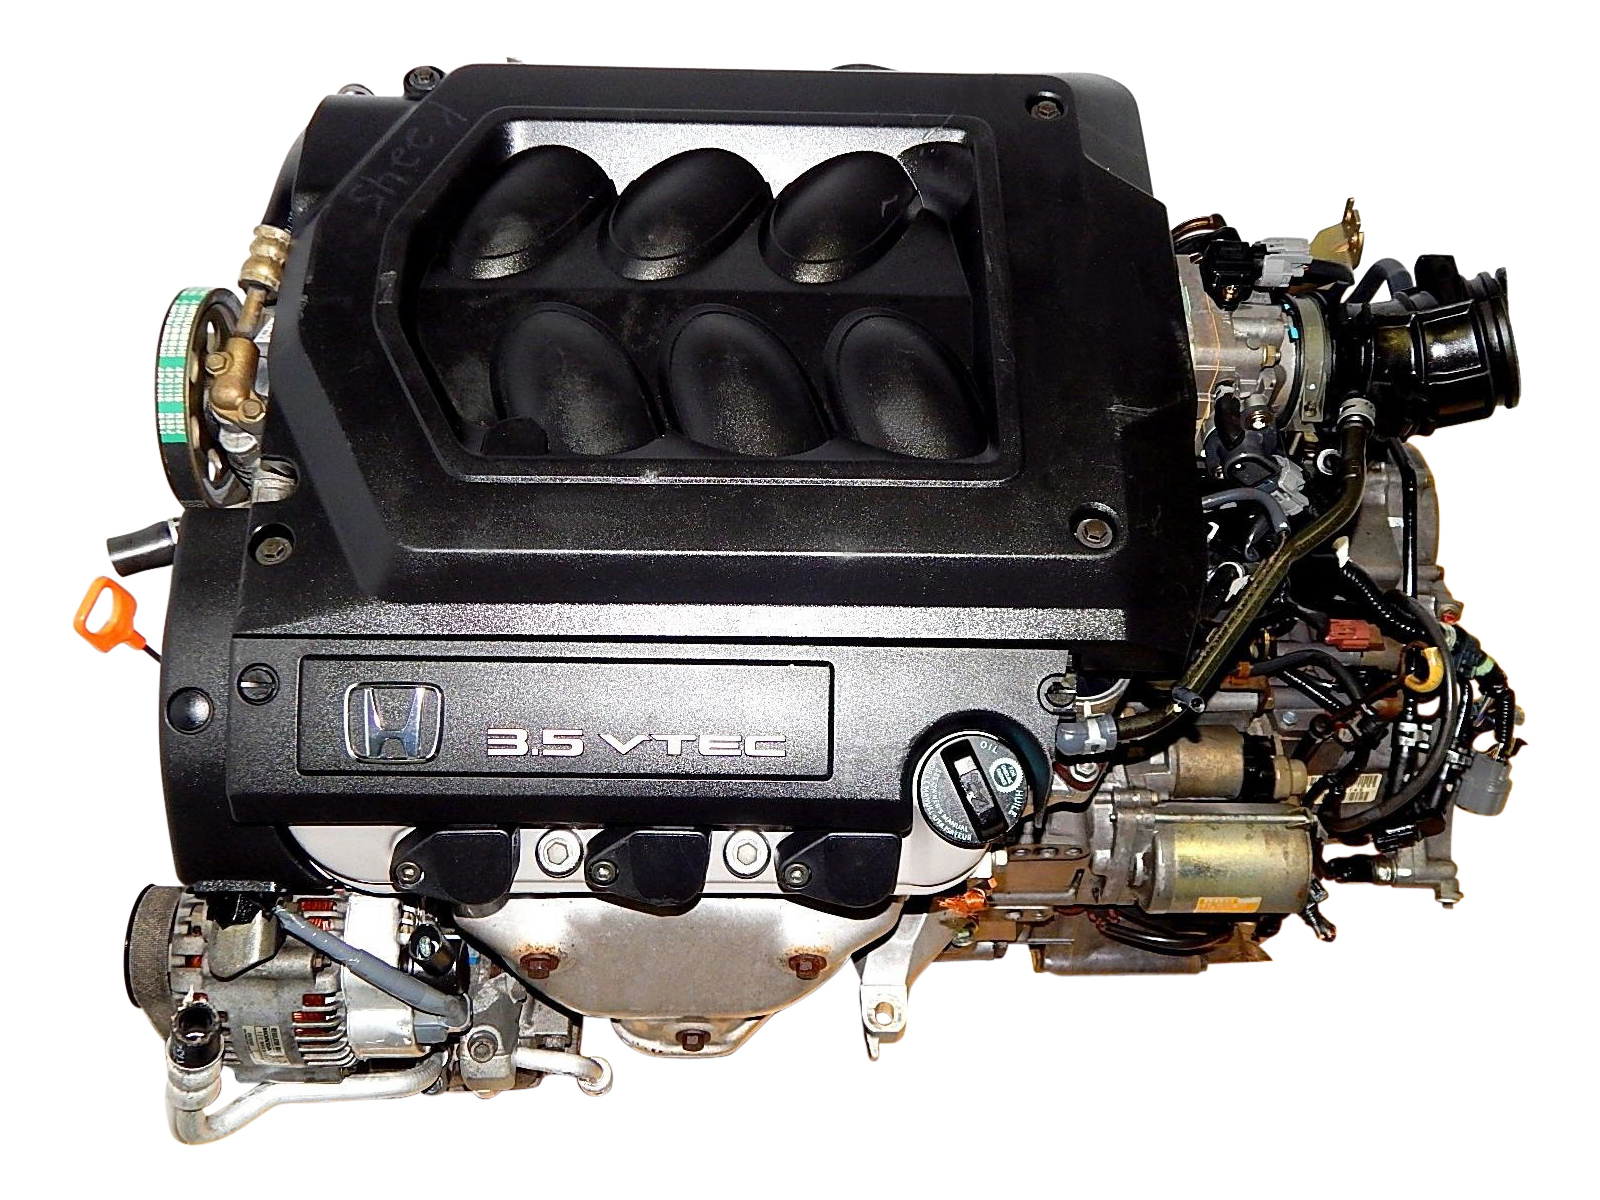 Acura TL 3.2 ltr J32A Japanese engine for sale